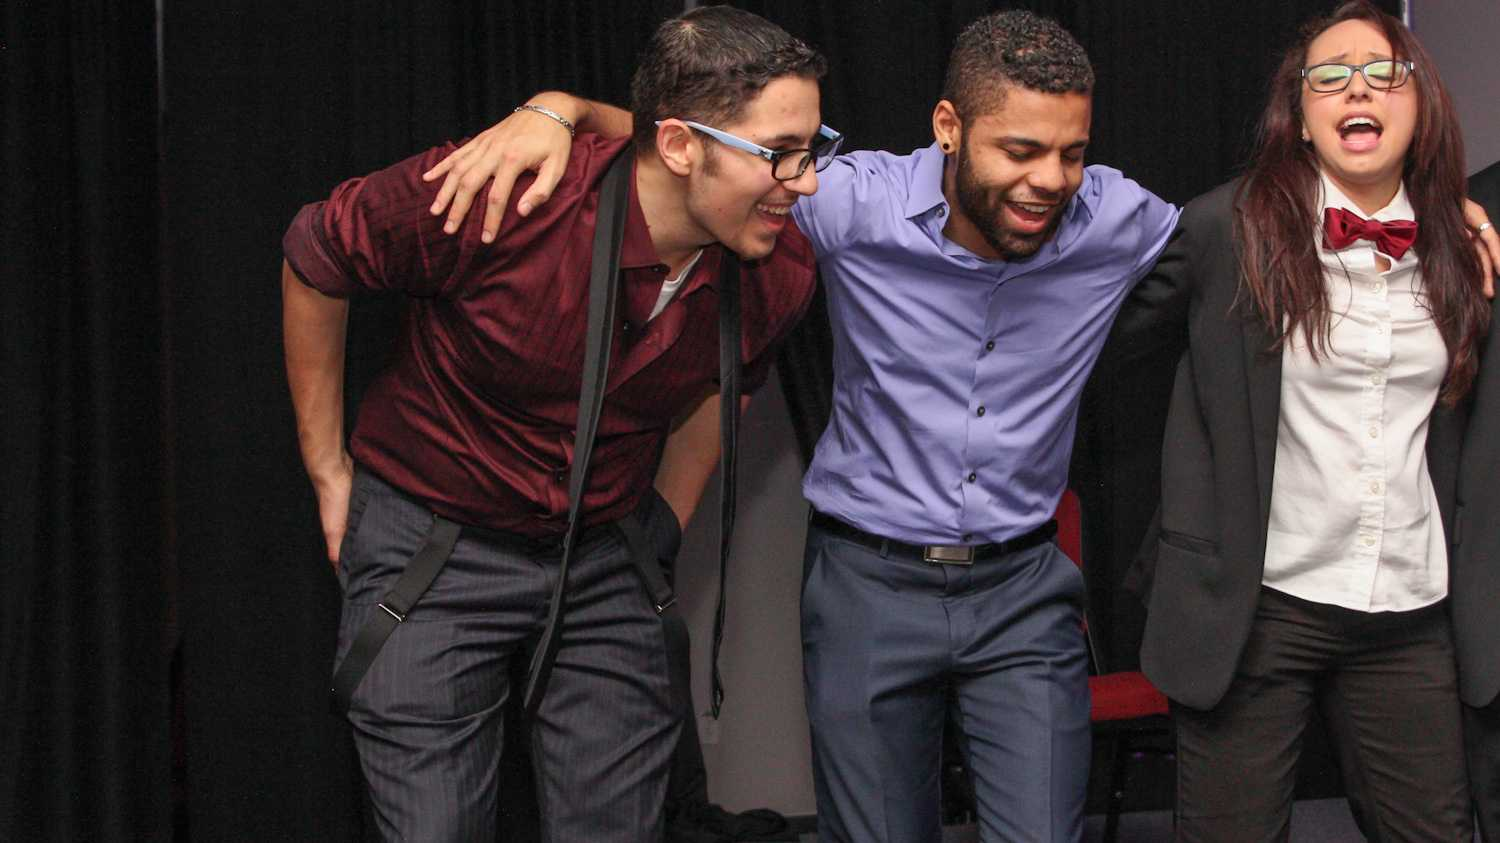 FAU students enjoying themselves at the LGBTQA Gala that took place on Friday Jan. 30th.